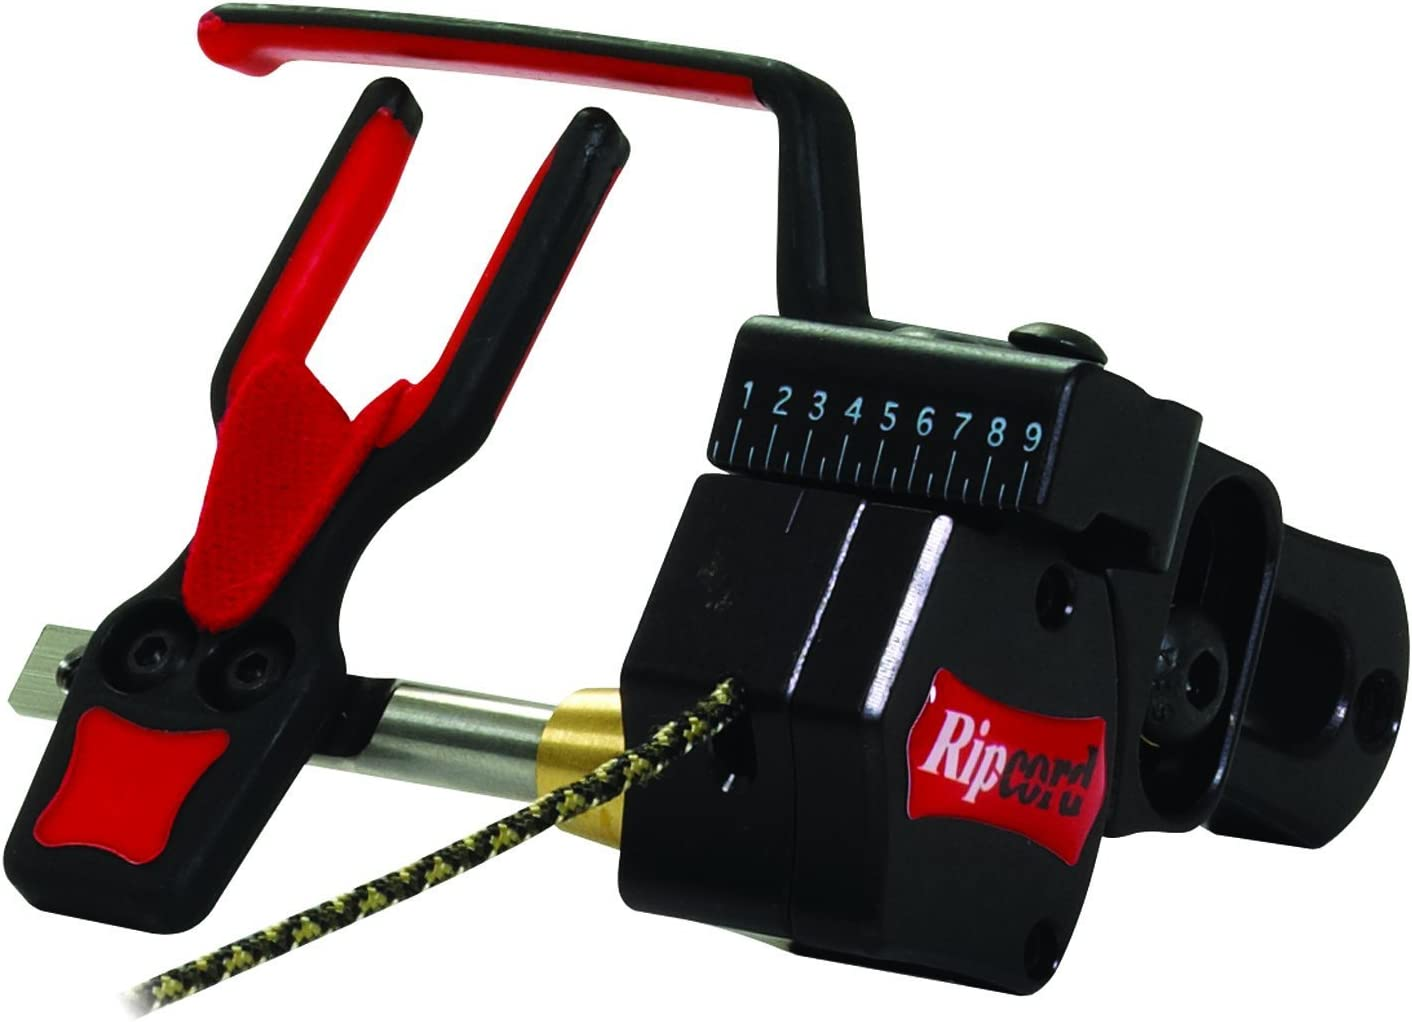 Ripcord Code Red Drop-Away Arrow Rest for Compound Bow Hunting Archery